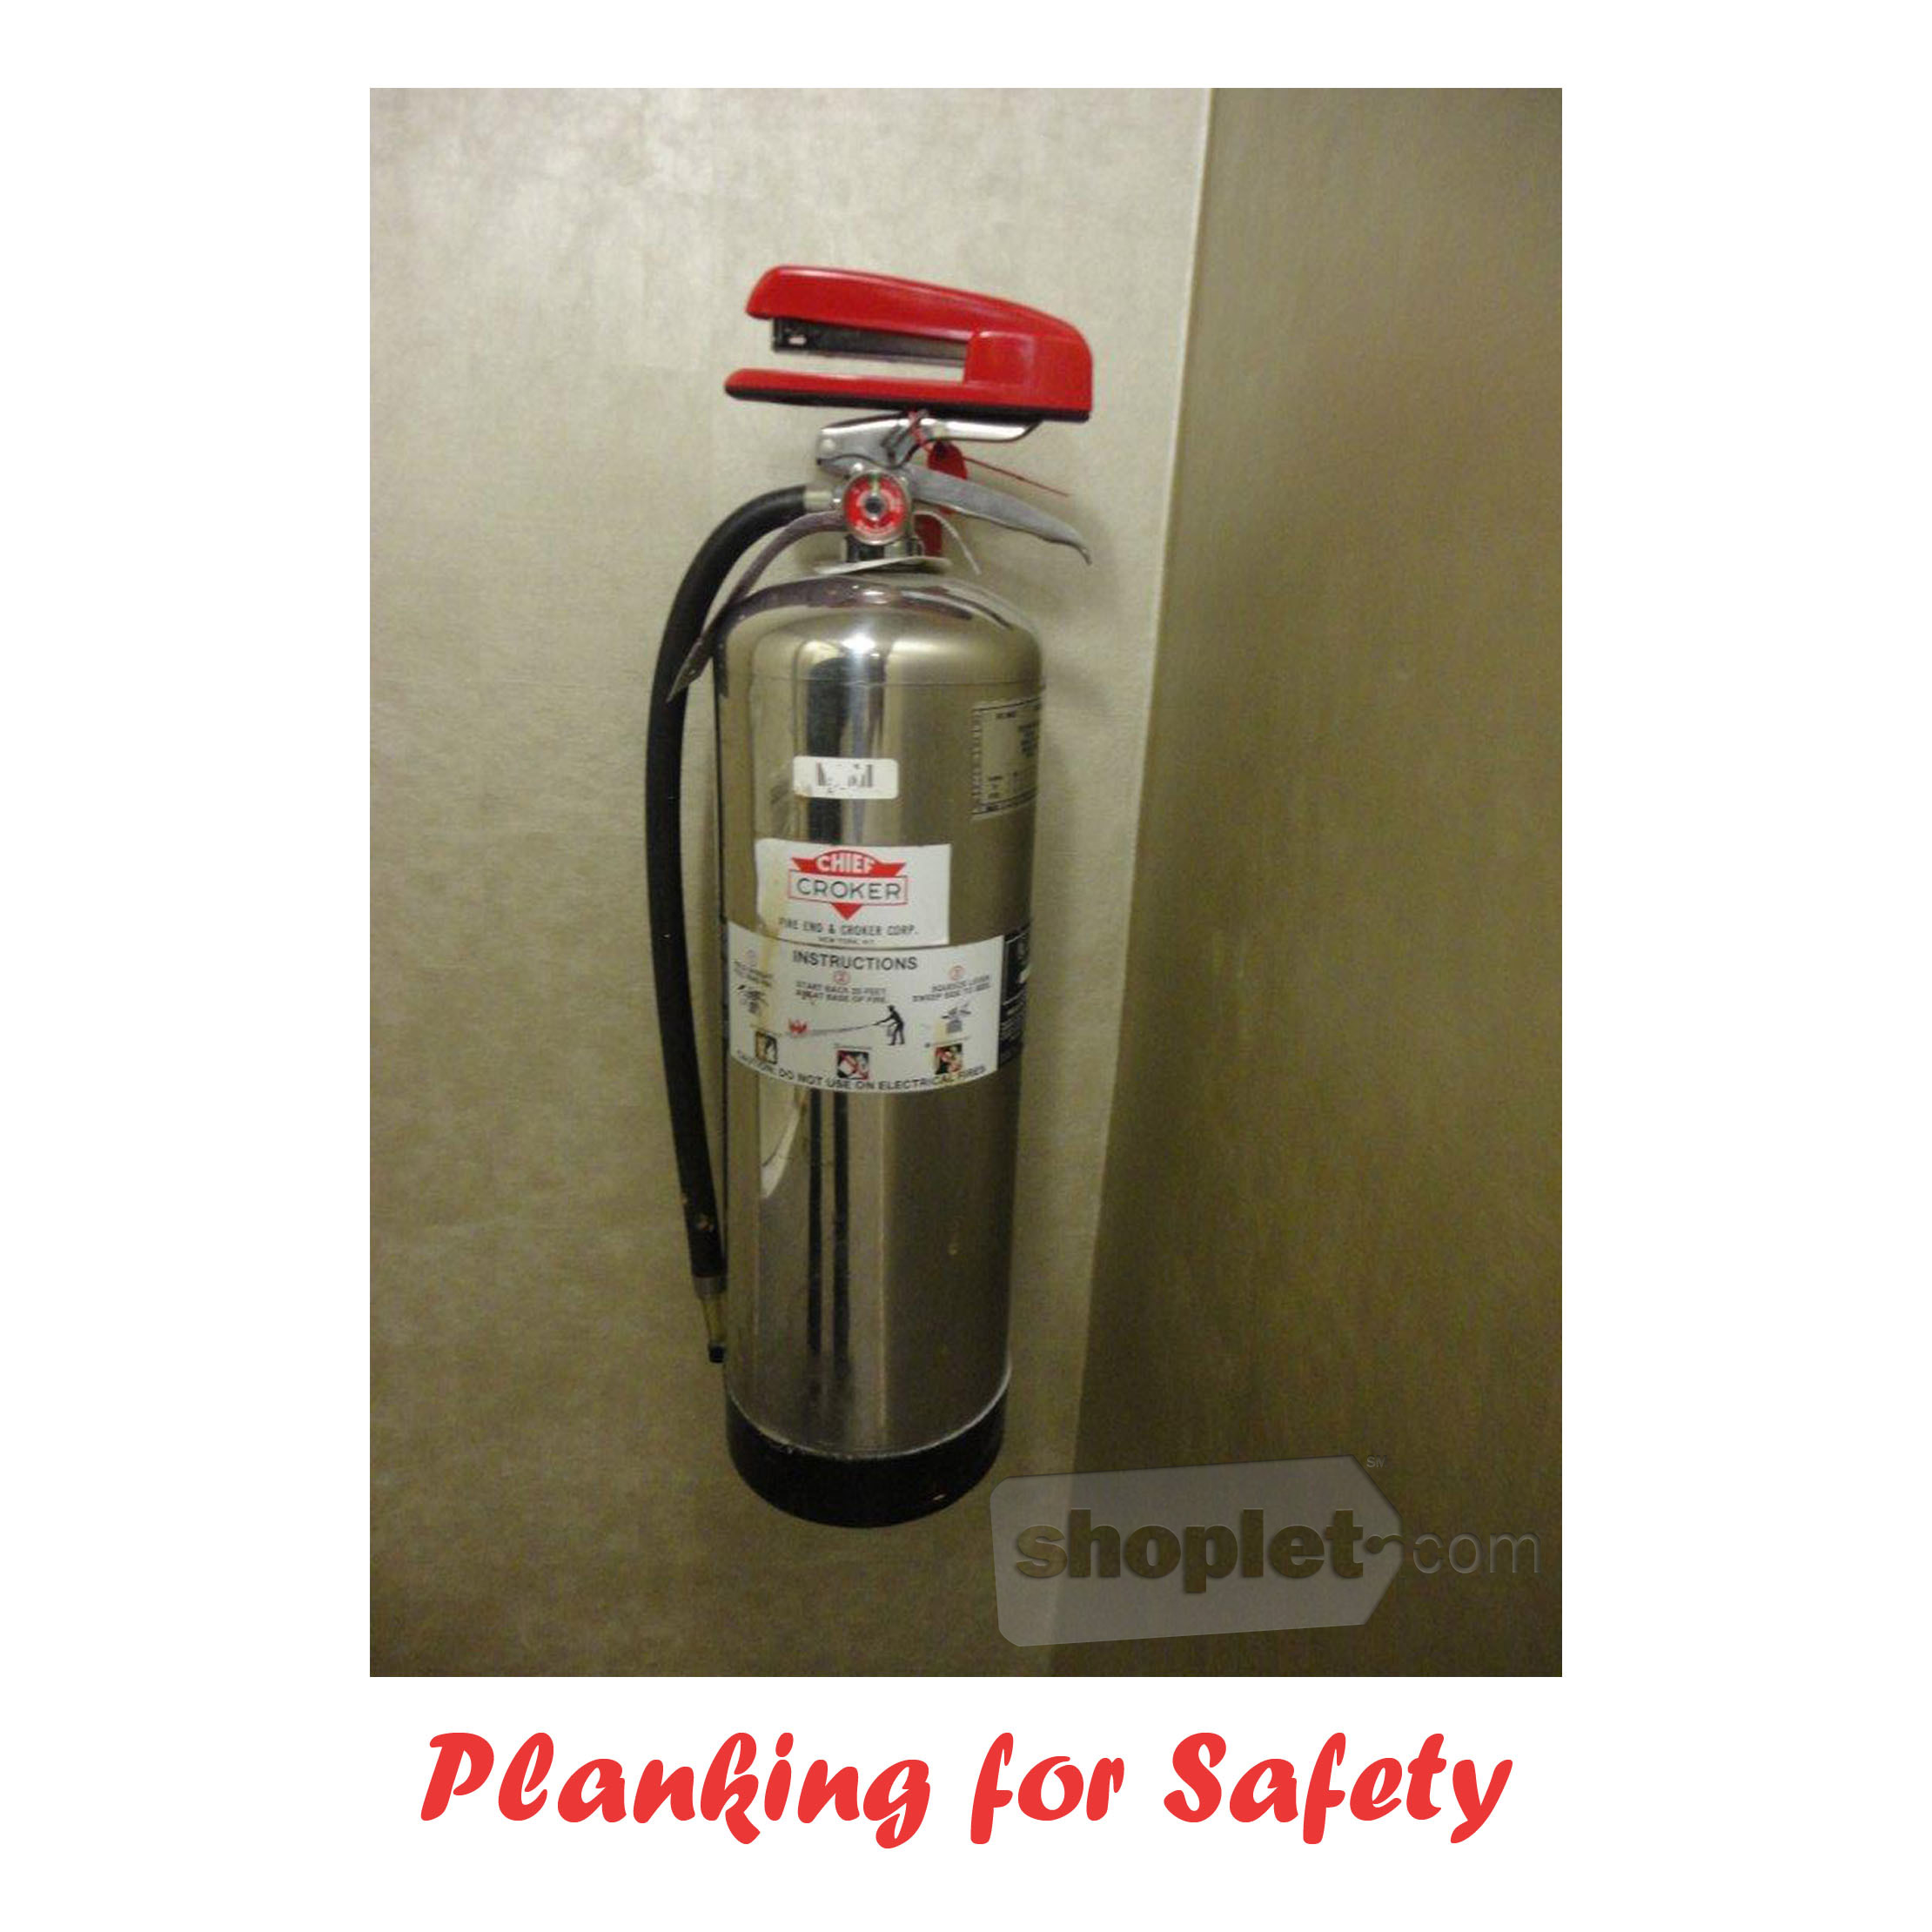 Shoplet-Planking-Stapler-Extinguisher